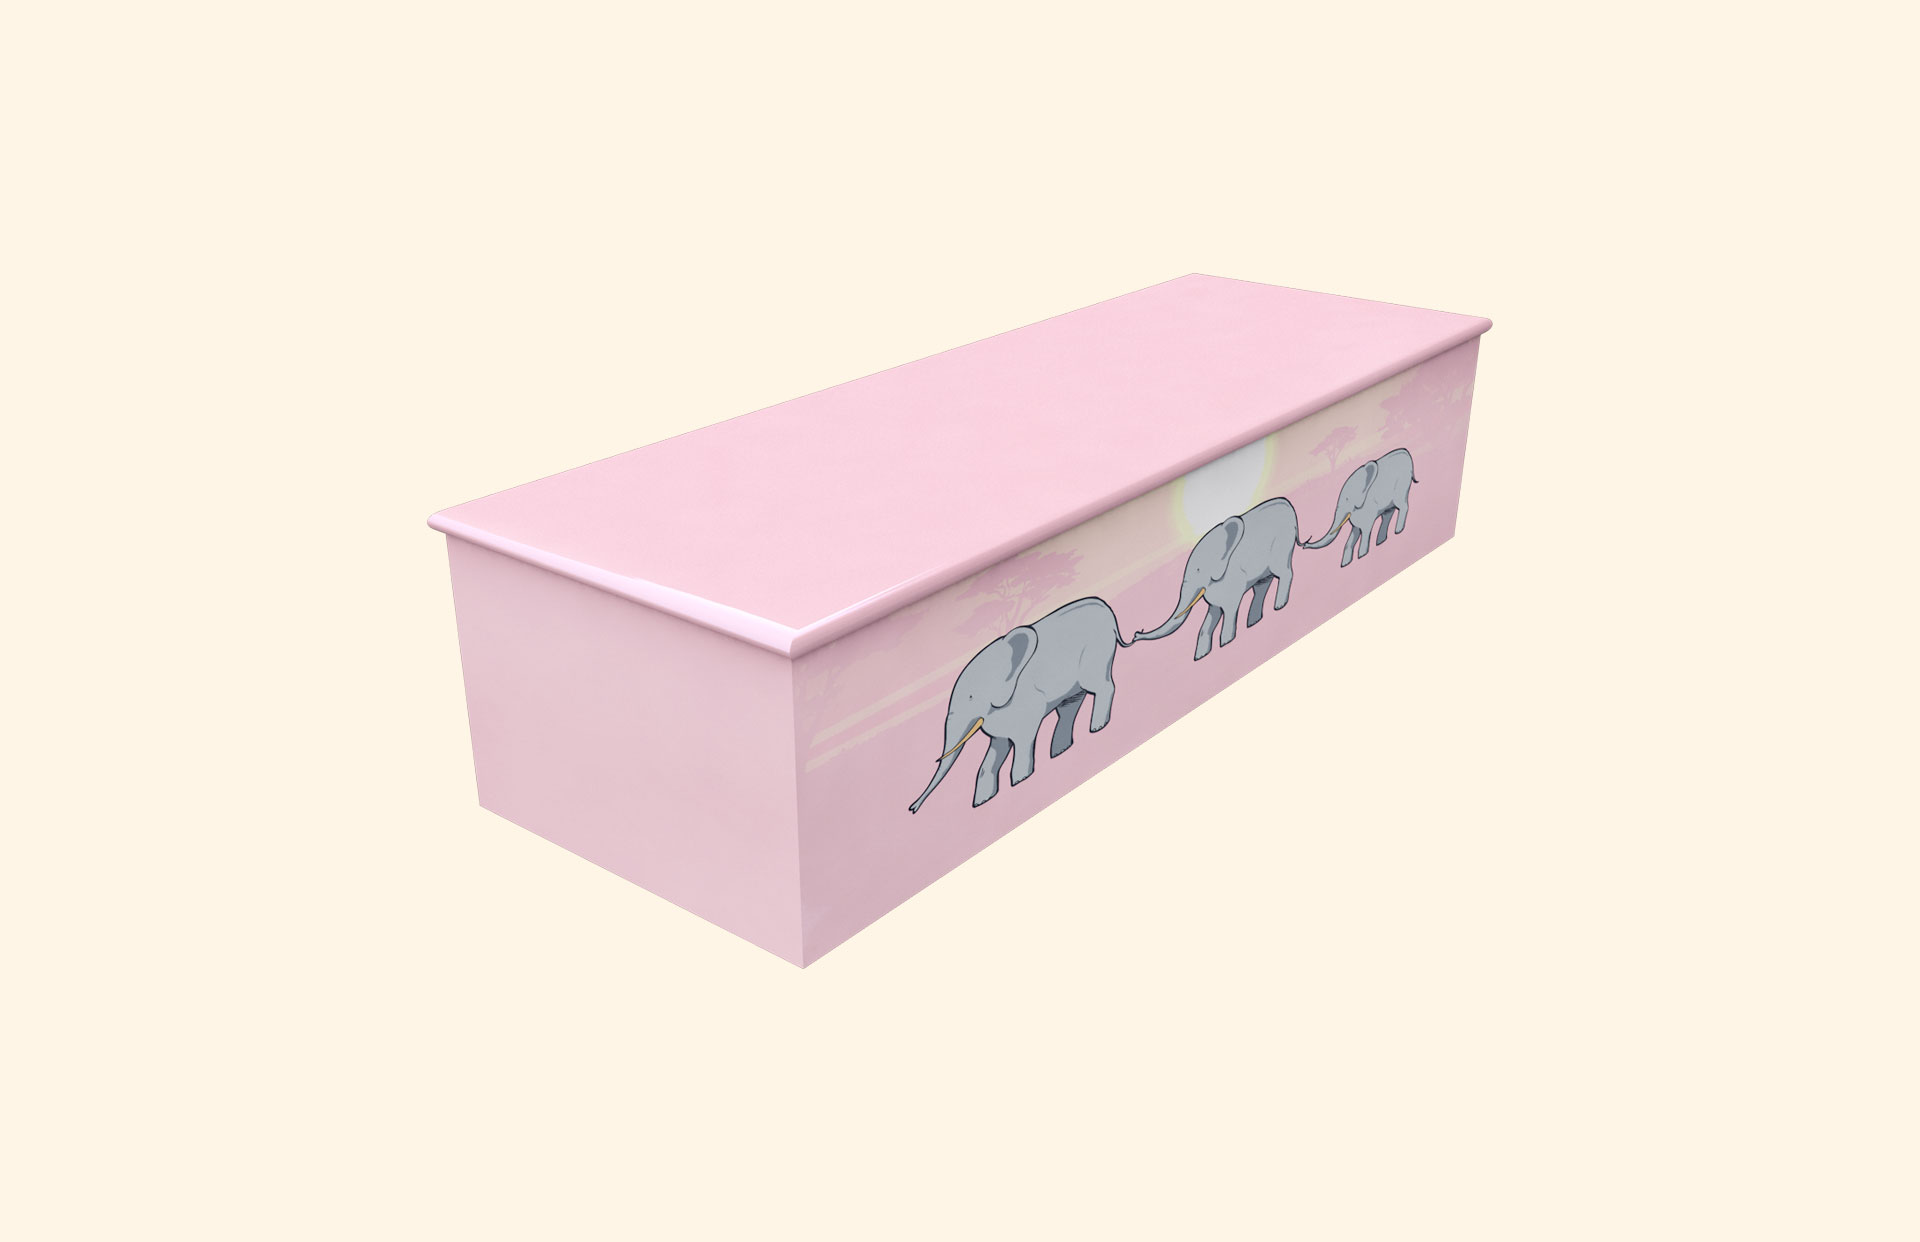 Elephant Trail child casket